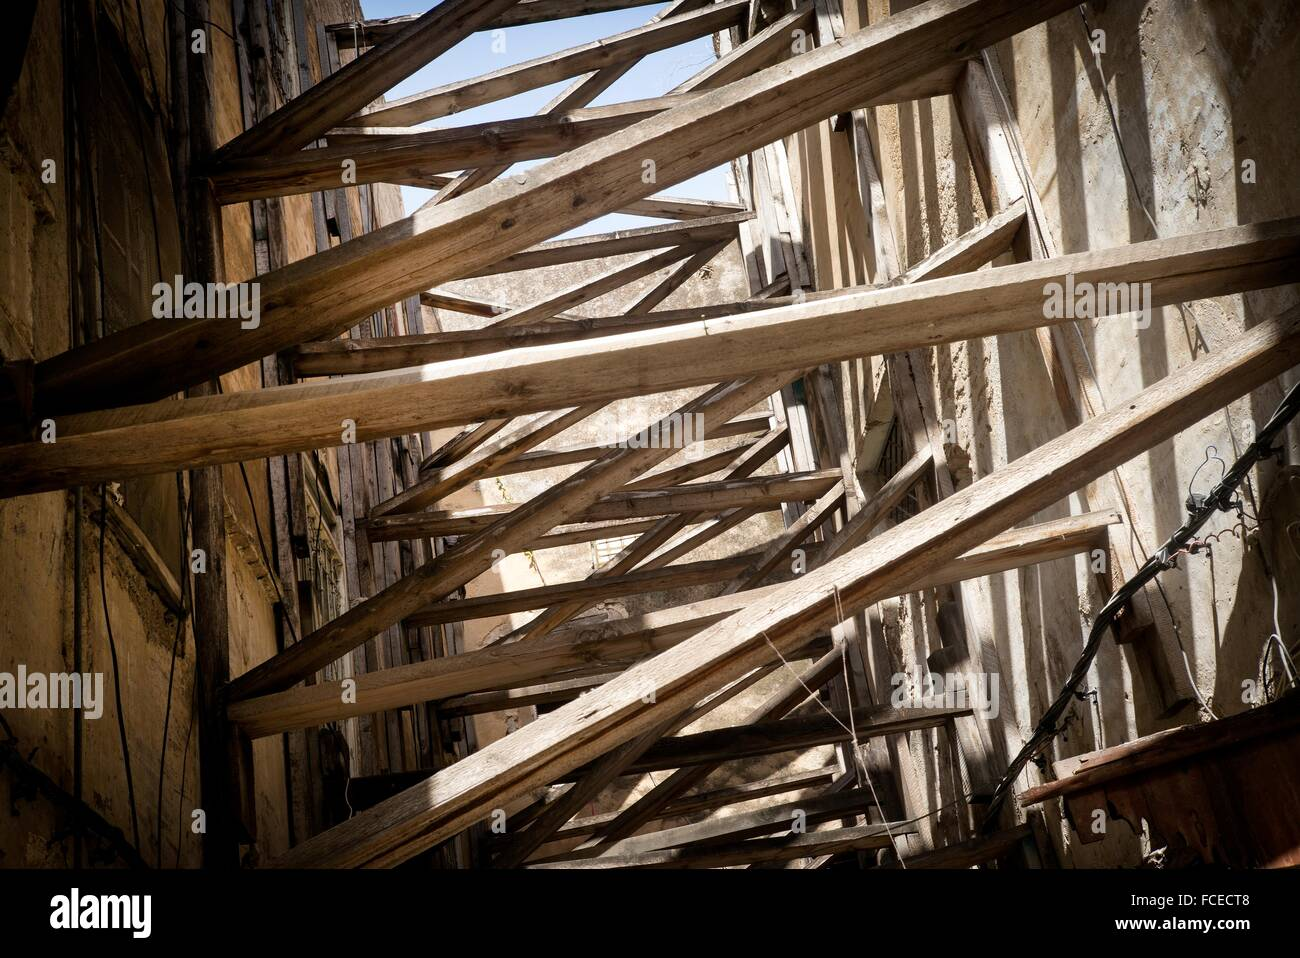 Shoring between two buildings on a street in the Medina of Fez. Fes, Historic City, Heritage, Morocco, Africa - Stock Image